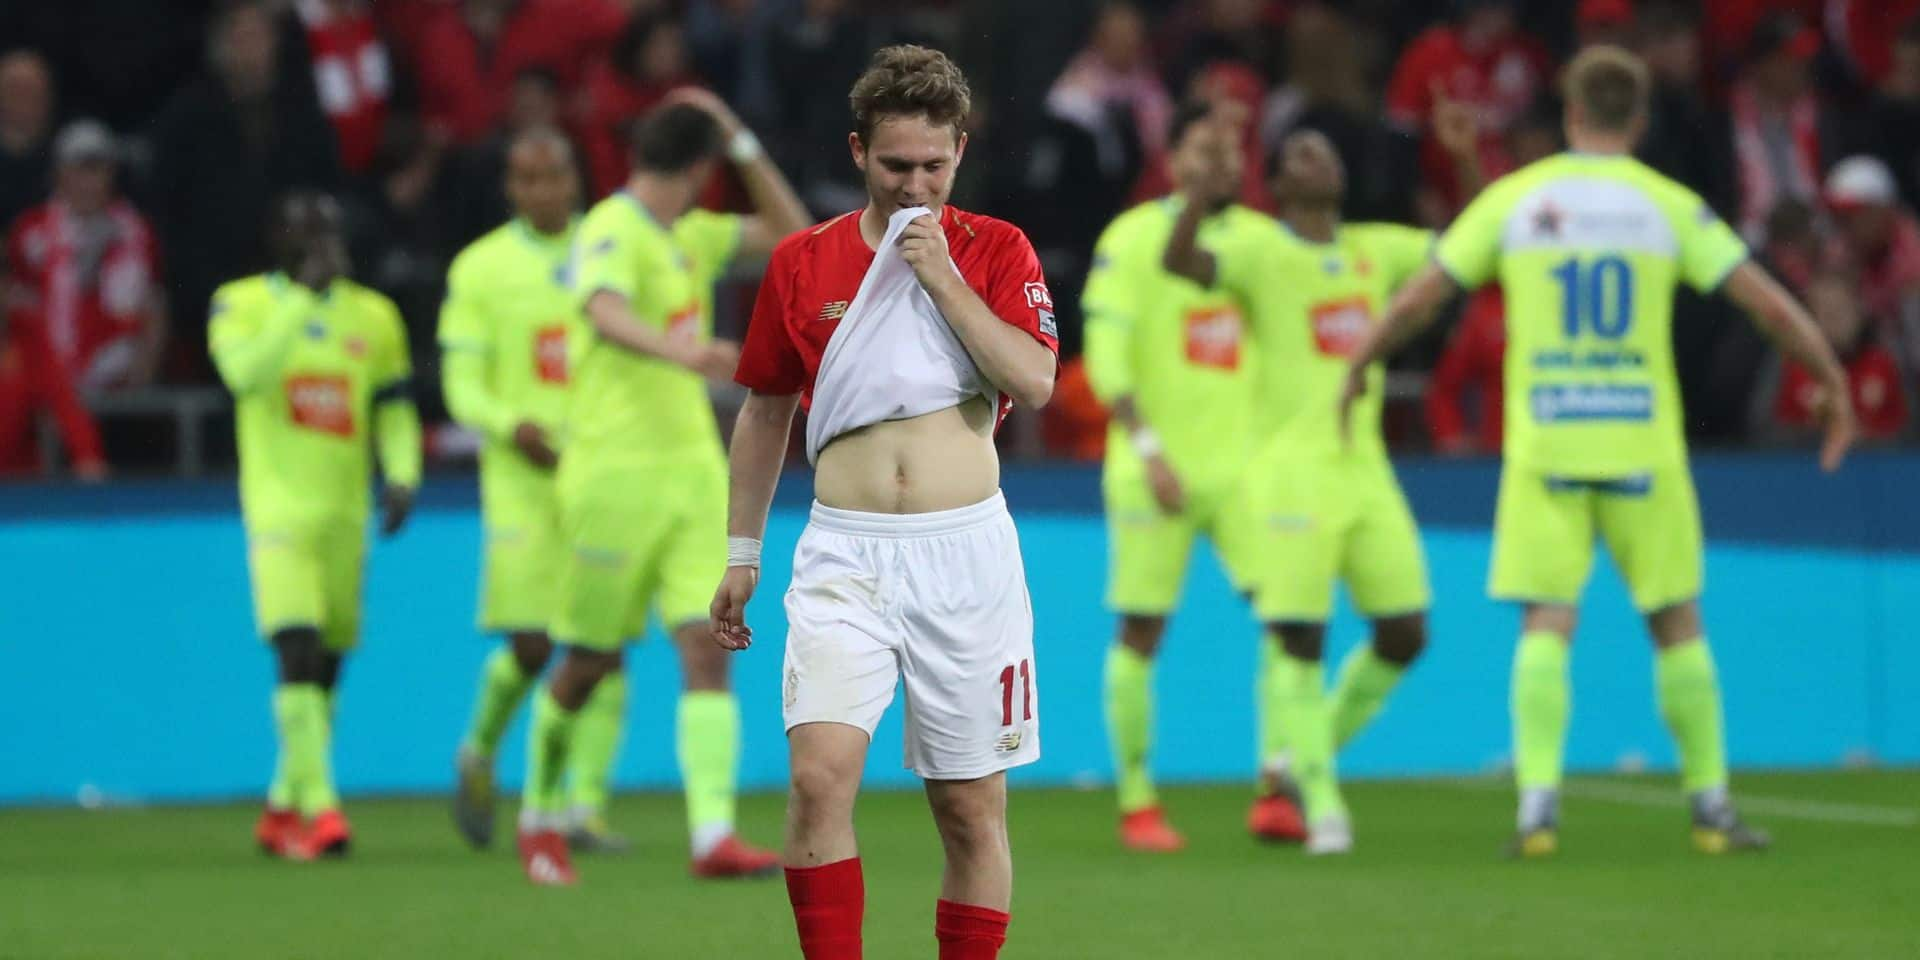 Standard's Alen Halilovic looks dejected during a soccer match between Standard de Liege and KAA Gent, Friday 10 May 2019 in Liege, on day 8 (out of 10) of the Play-off 1 of the 'Jupiler Pro League' Belgian soccer championship. BELGA PHOTO VIRGINIE LEFOUR